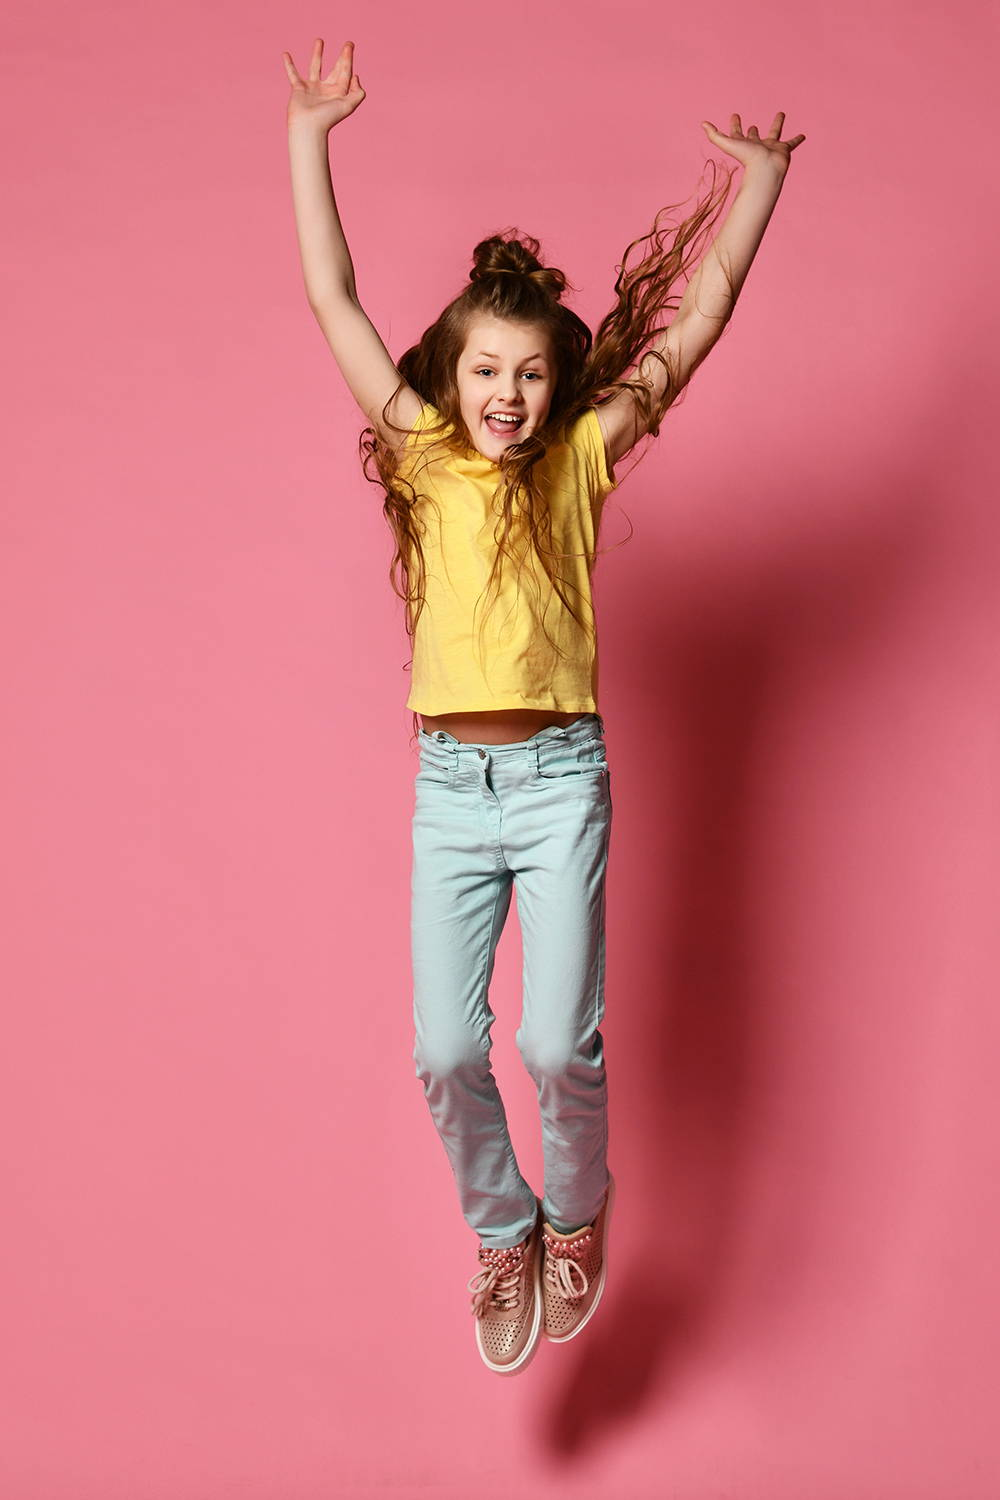 Girl Wearing Jeans Jumping Up